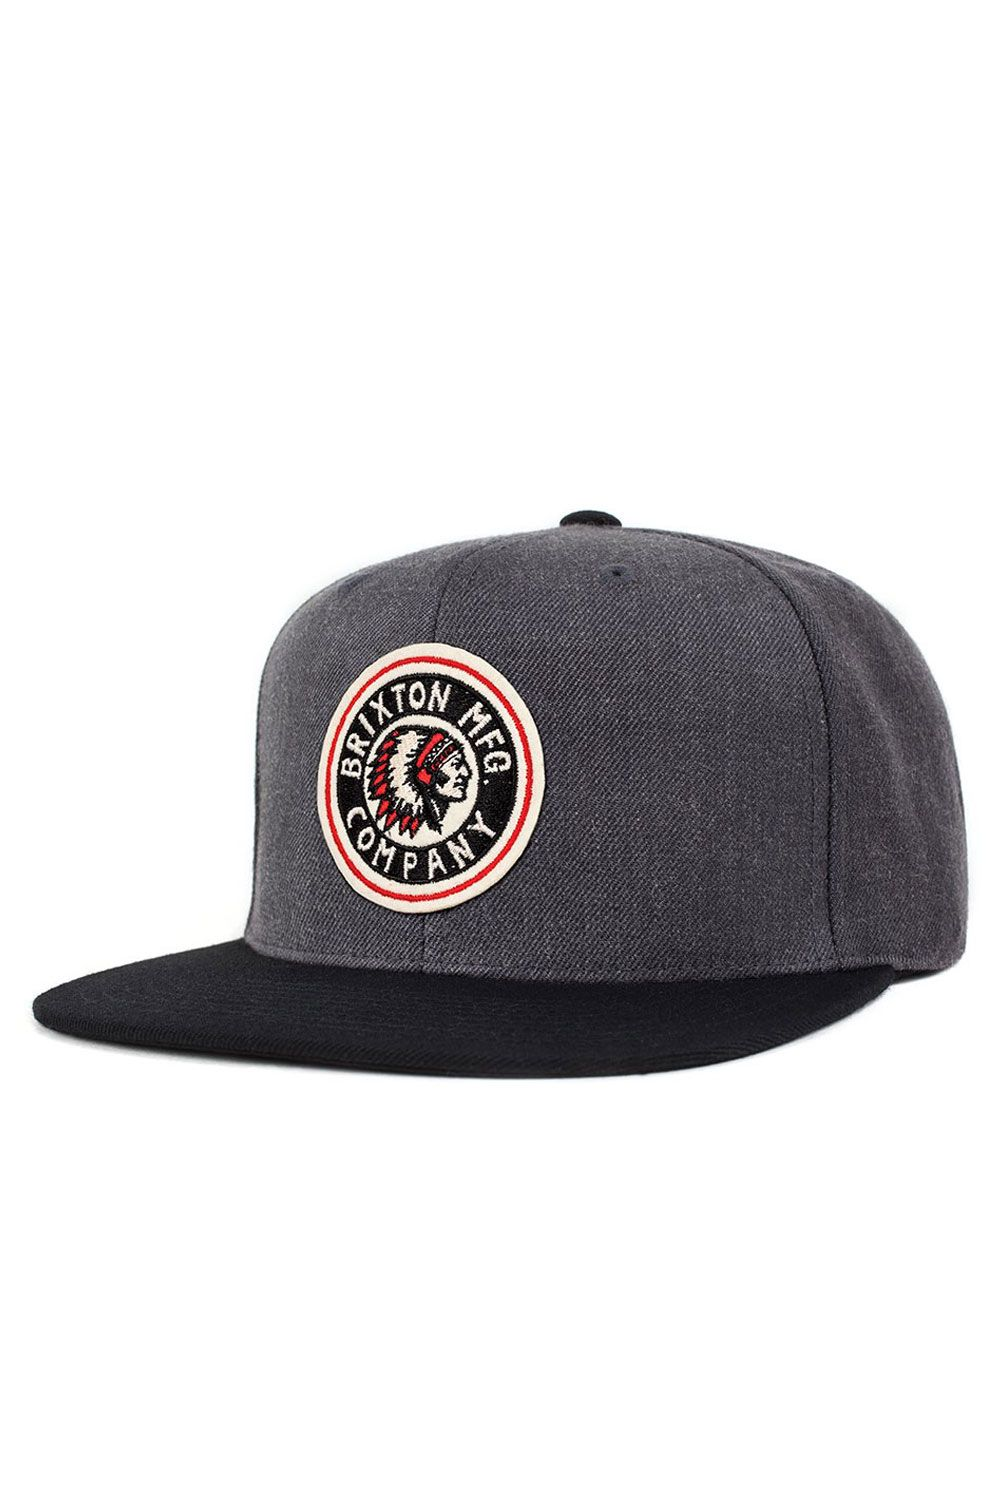 bcd92872c4e The Rival from Brixton is a six-panel cut and sew acrylic wool cap with a  custom embroidered felt patch at front with adjustable snaps at back.